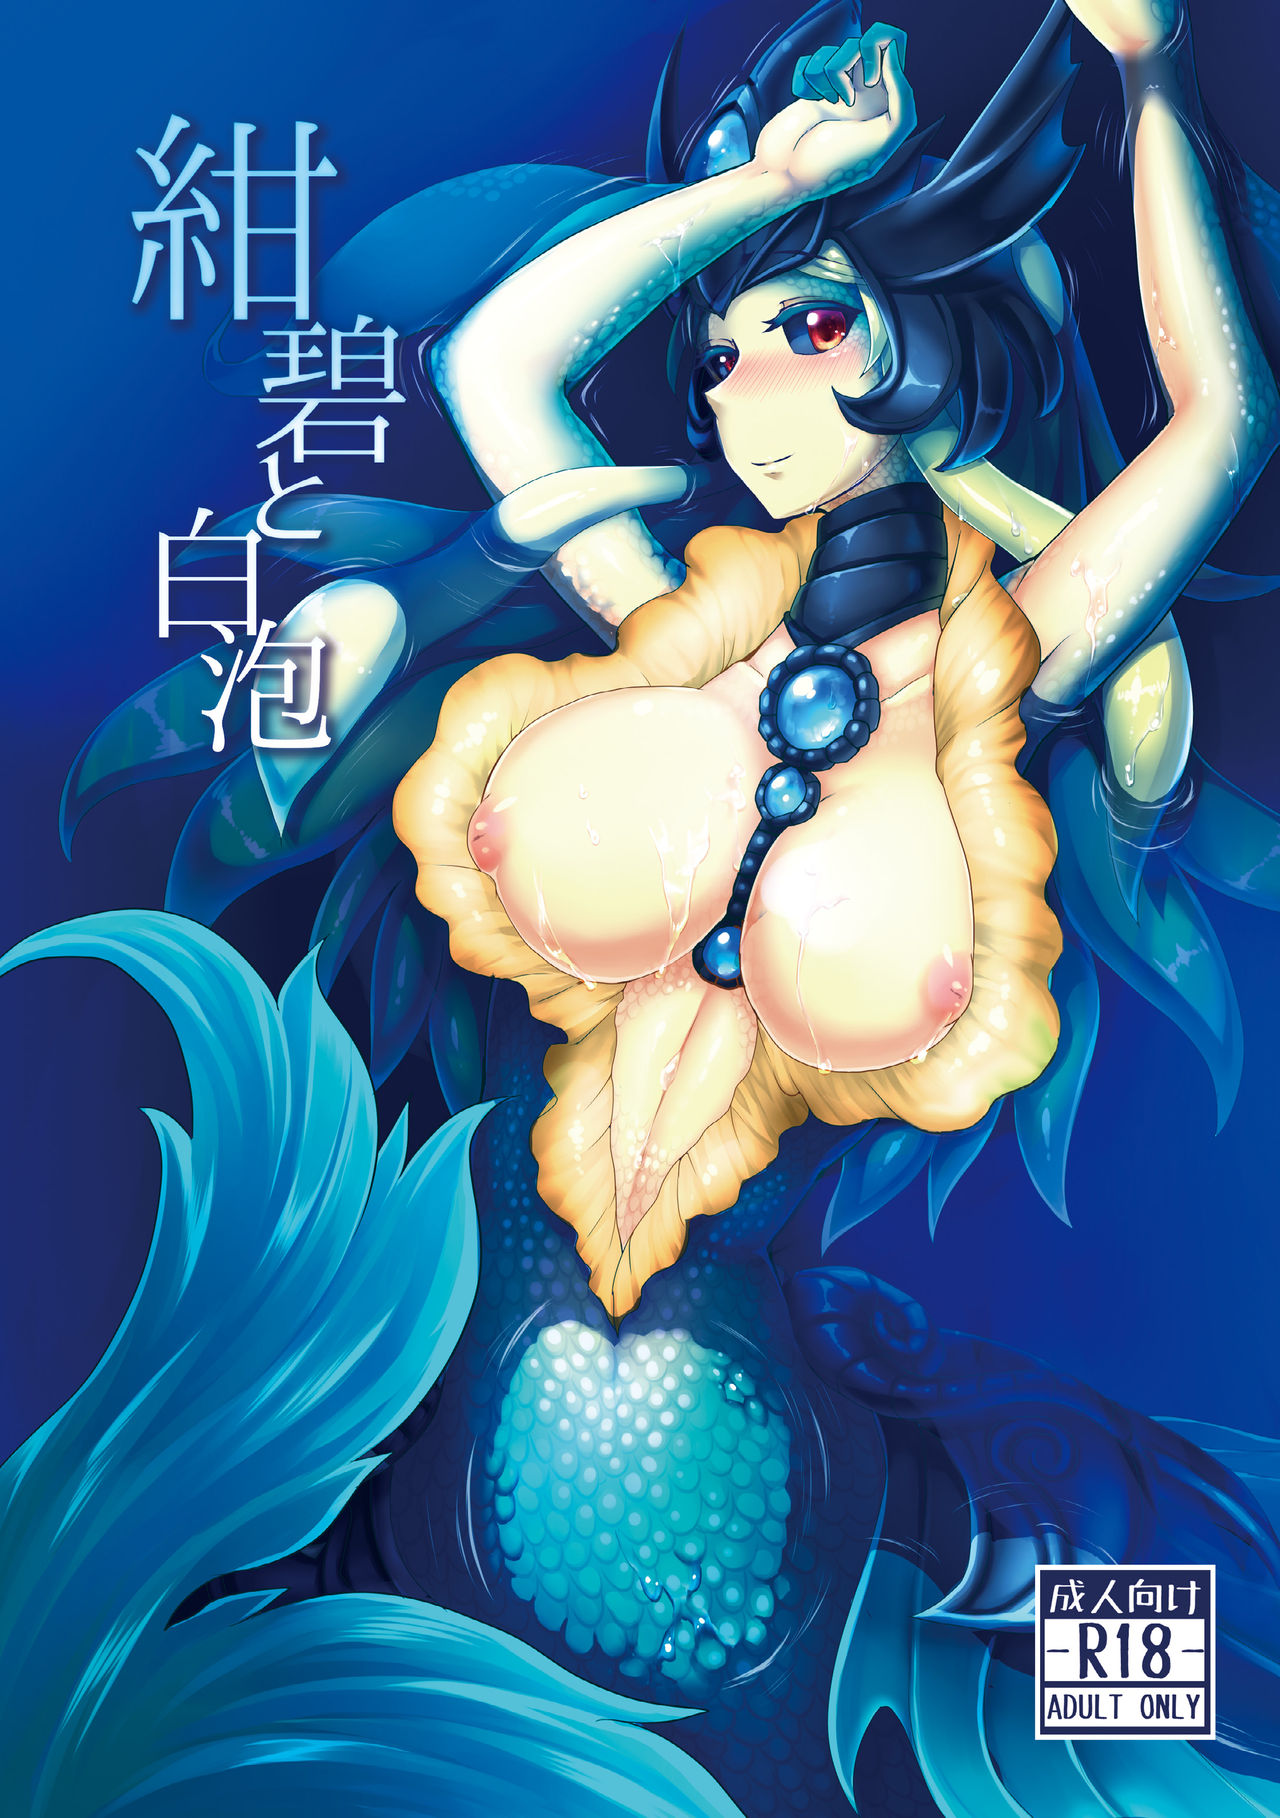 Comic-Condom-hentai-manga-cartoon-porn-comics-sex-doujin-mermaid-big-breasts-furry-creature-cuties-video-game-League-of-Legends-Nami-I-love-you-my-Summoner